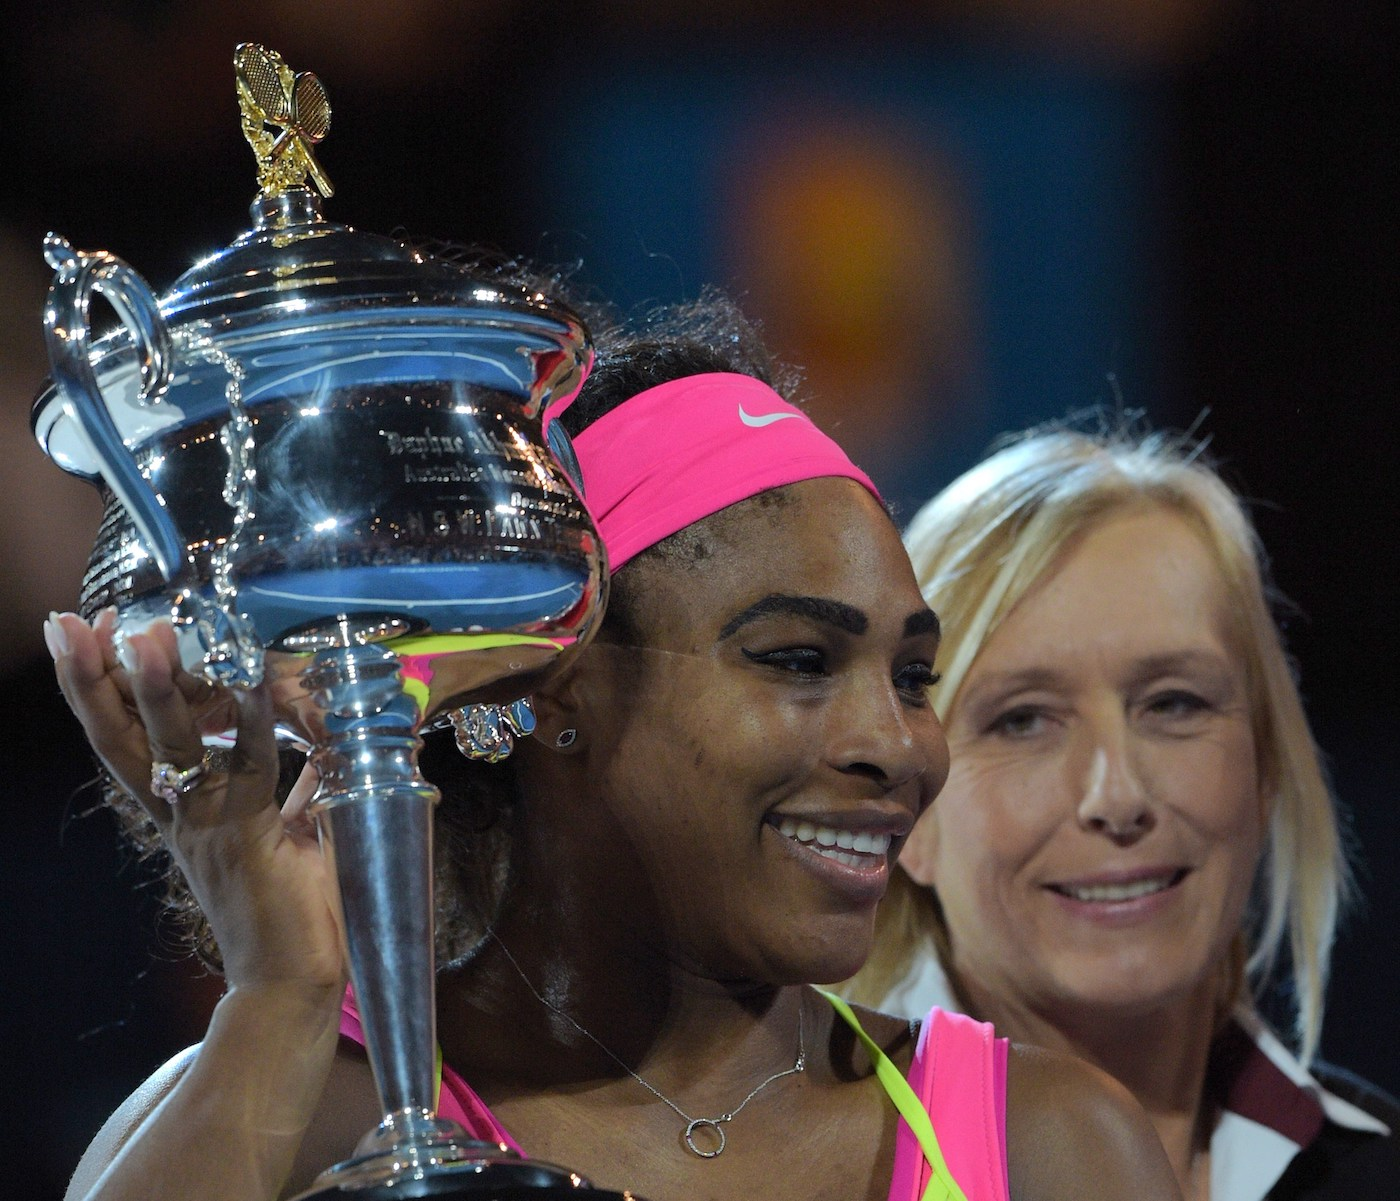 Serena Williams is one of the greatest women's tennis players ever, but Martina Navratilova contests Williams' status as the greatest of all time.